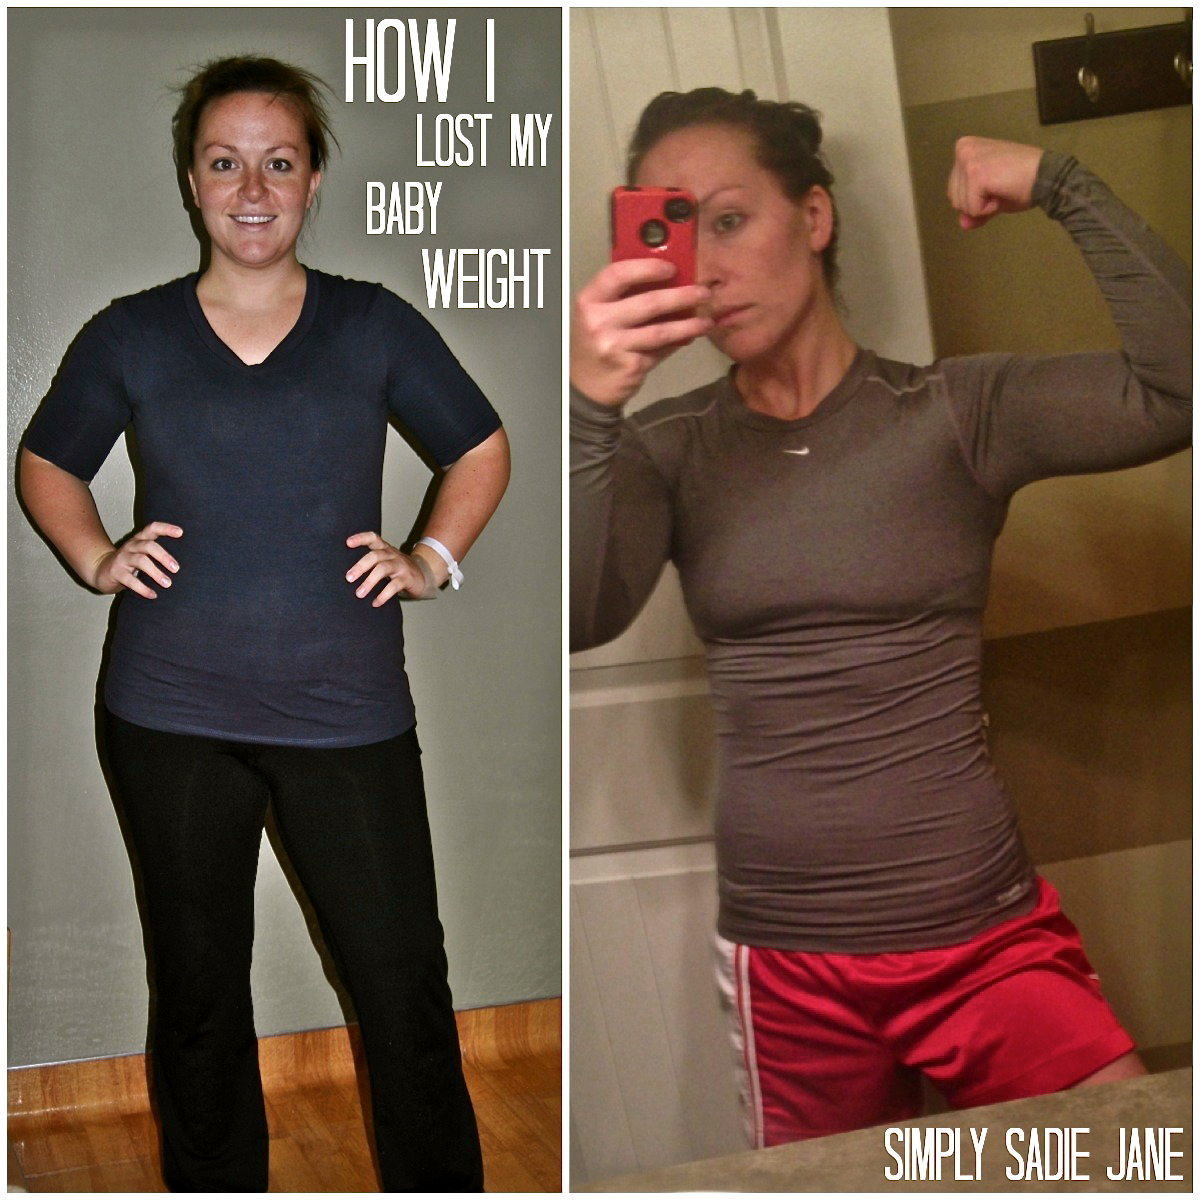 YOUR FITNESS/HEALTH QUESTIONS ANSWERED!!